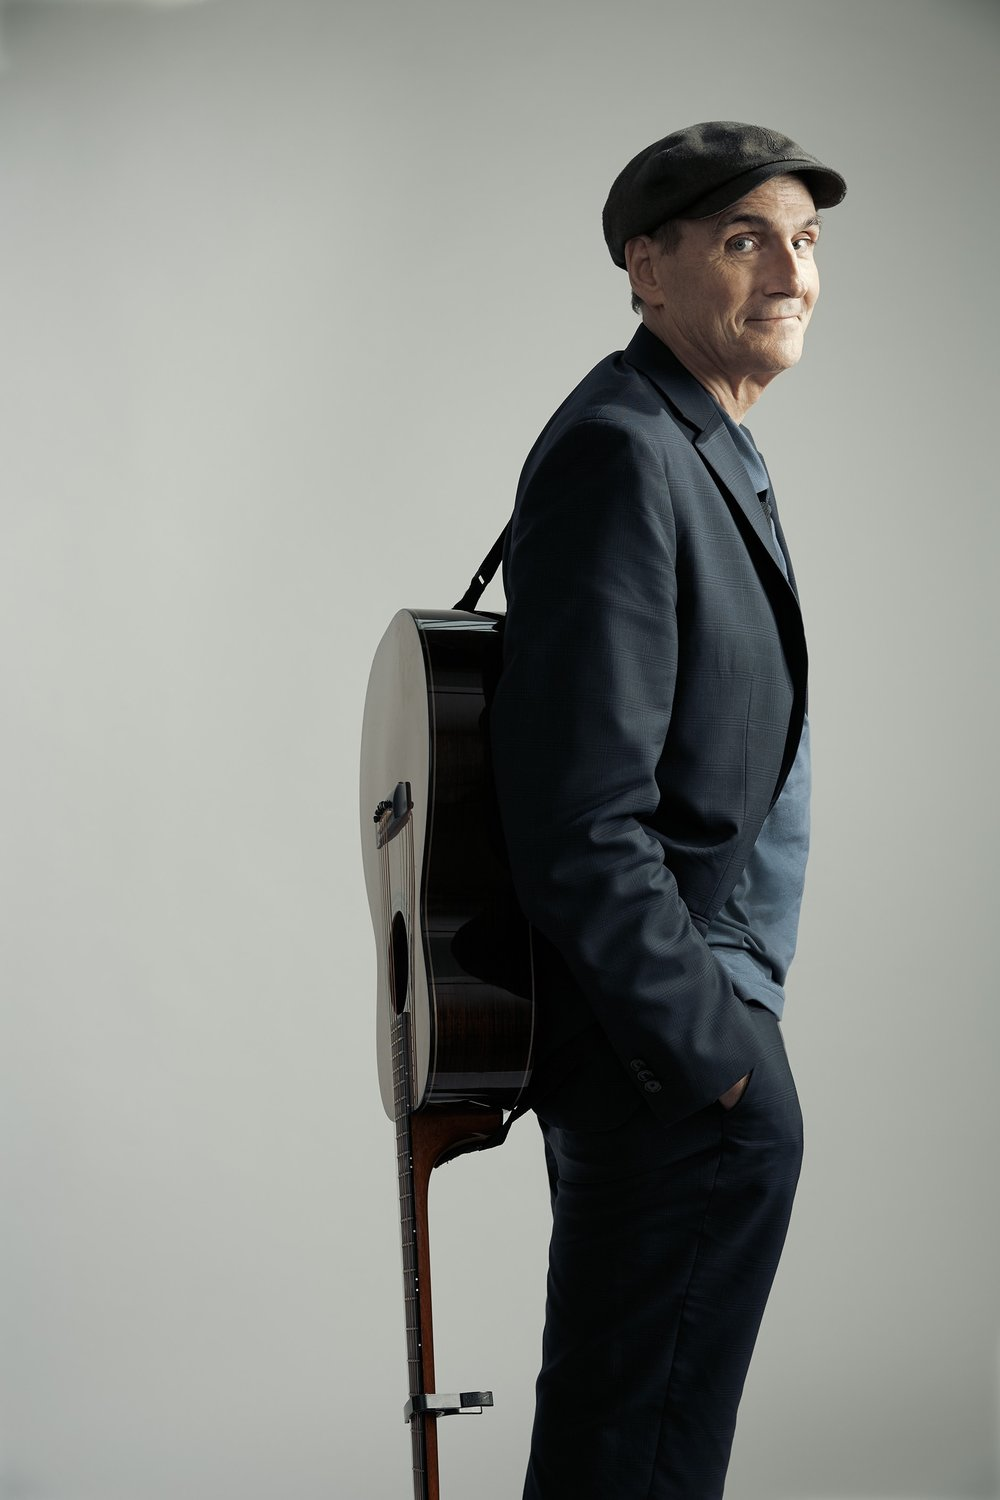 2015_05_13_Billboard_JamesTaylor_Shot_1_107-3a.jpg